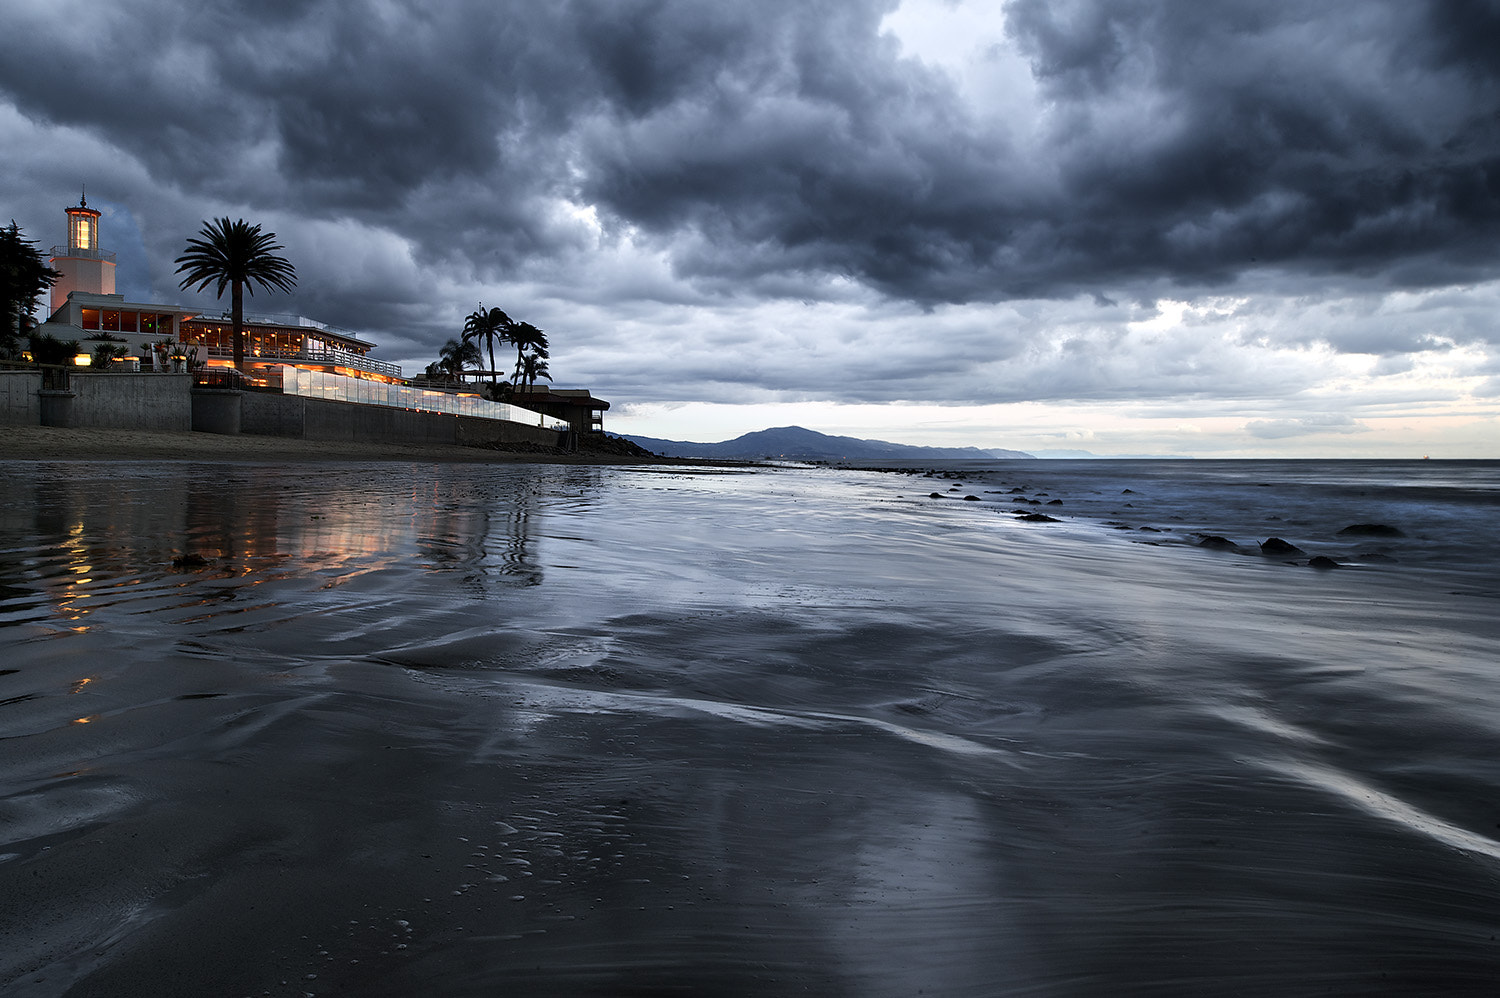 Photograph Storm Light by Nick Price on 500px